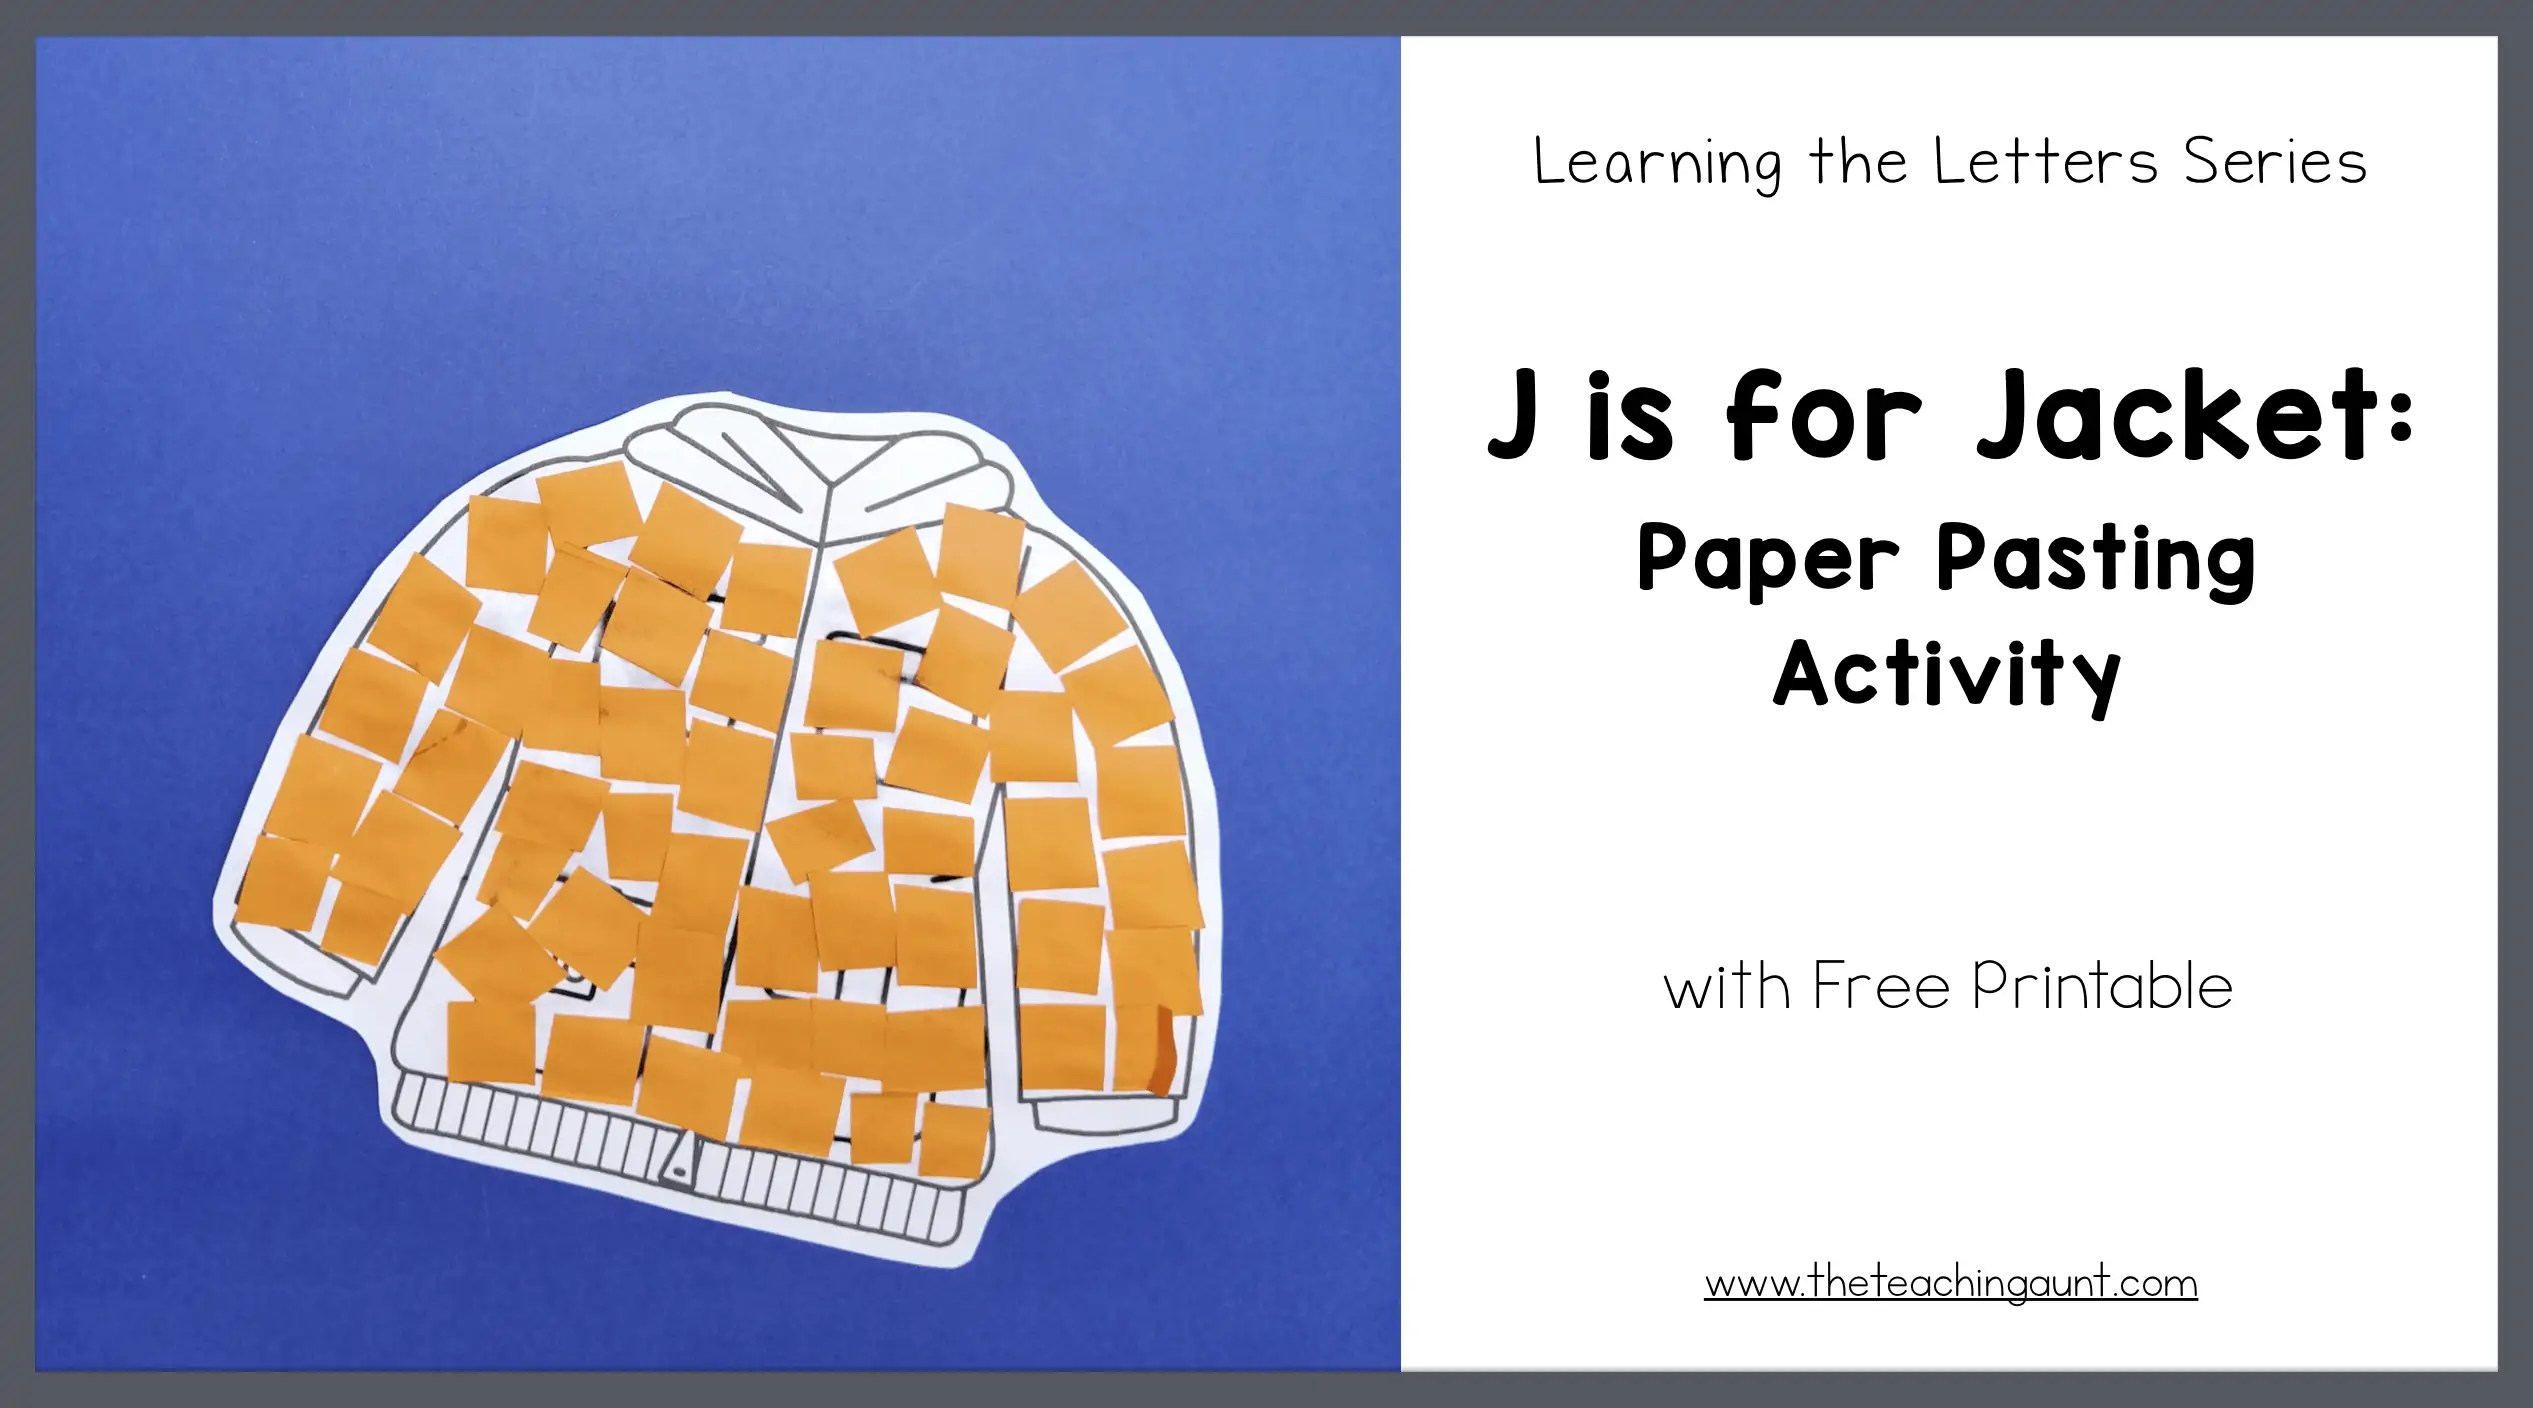 J is for Jacket: Paper Pasting Activity